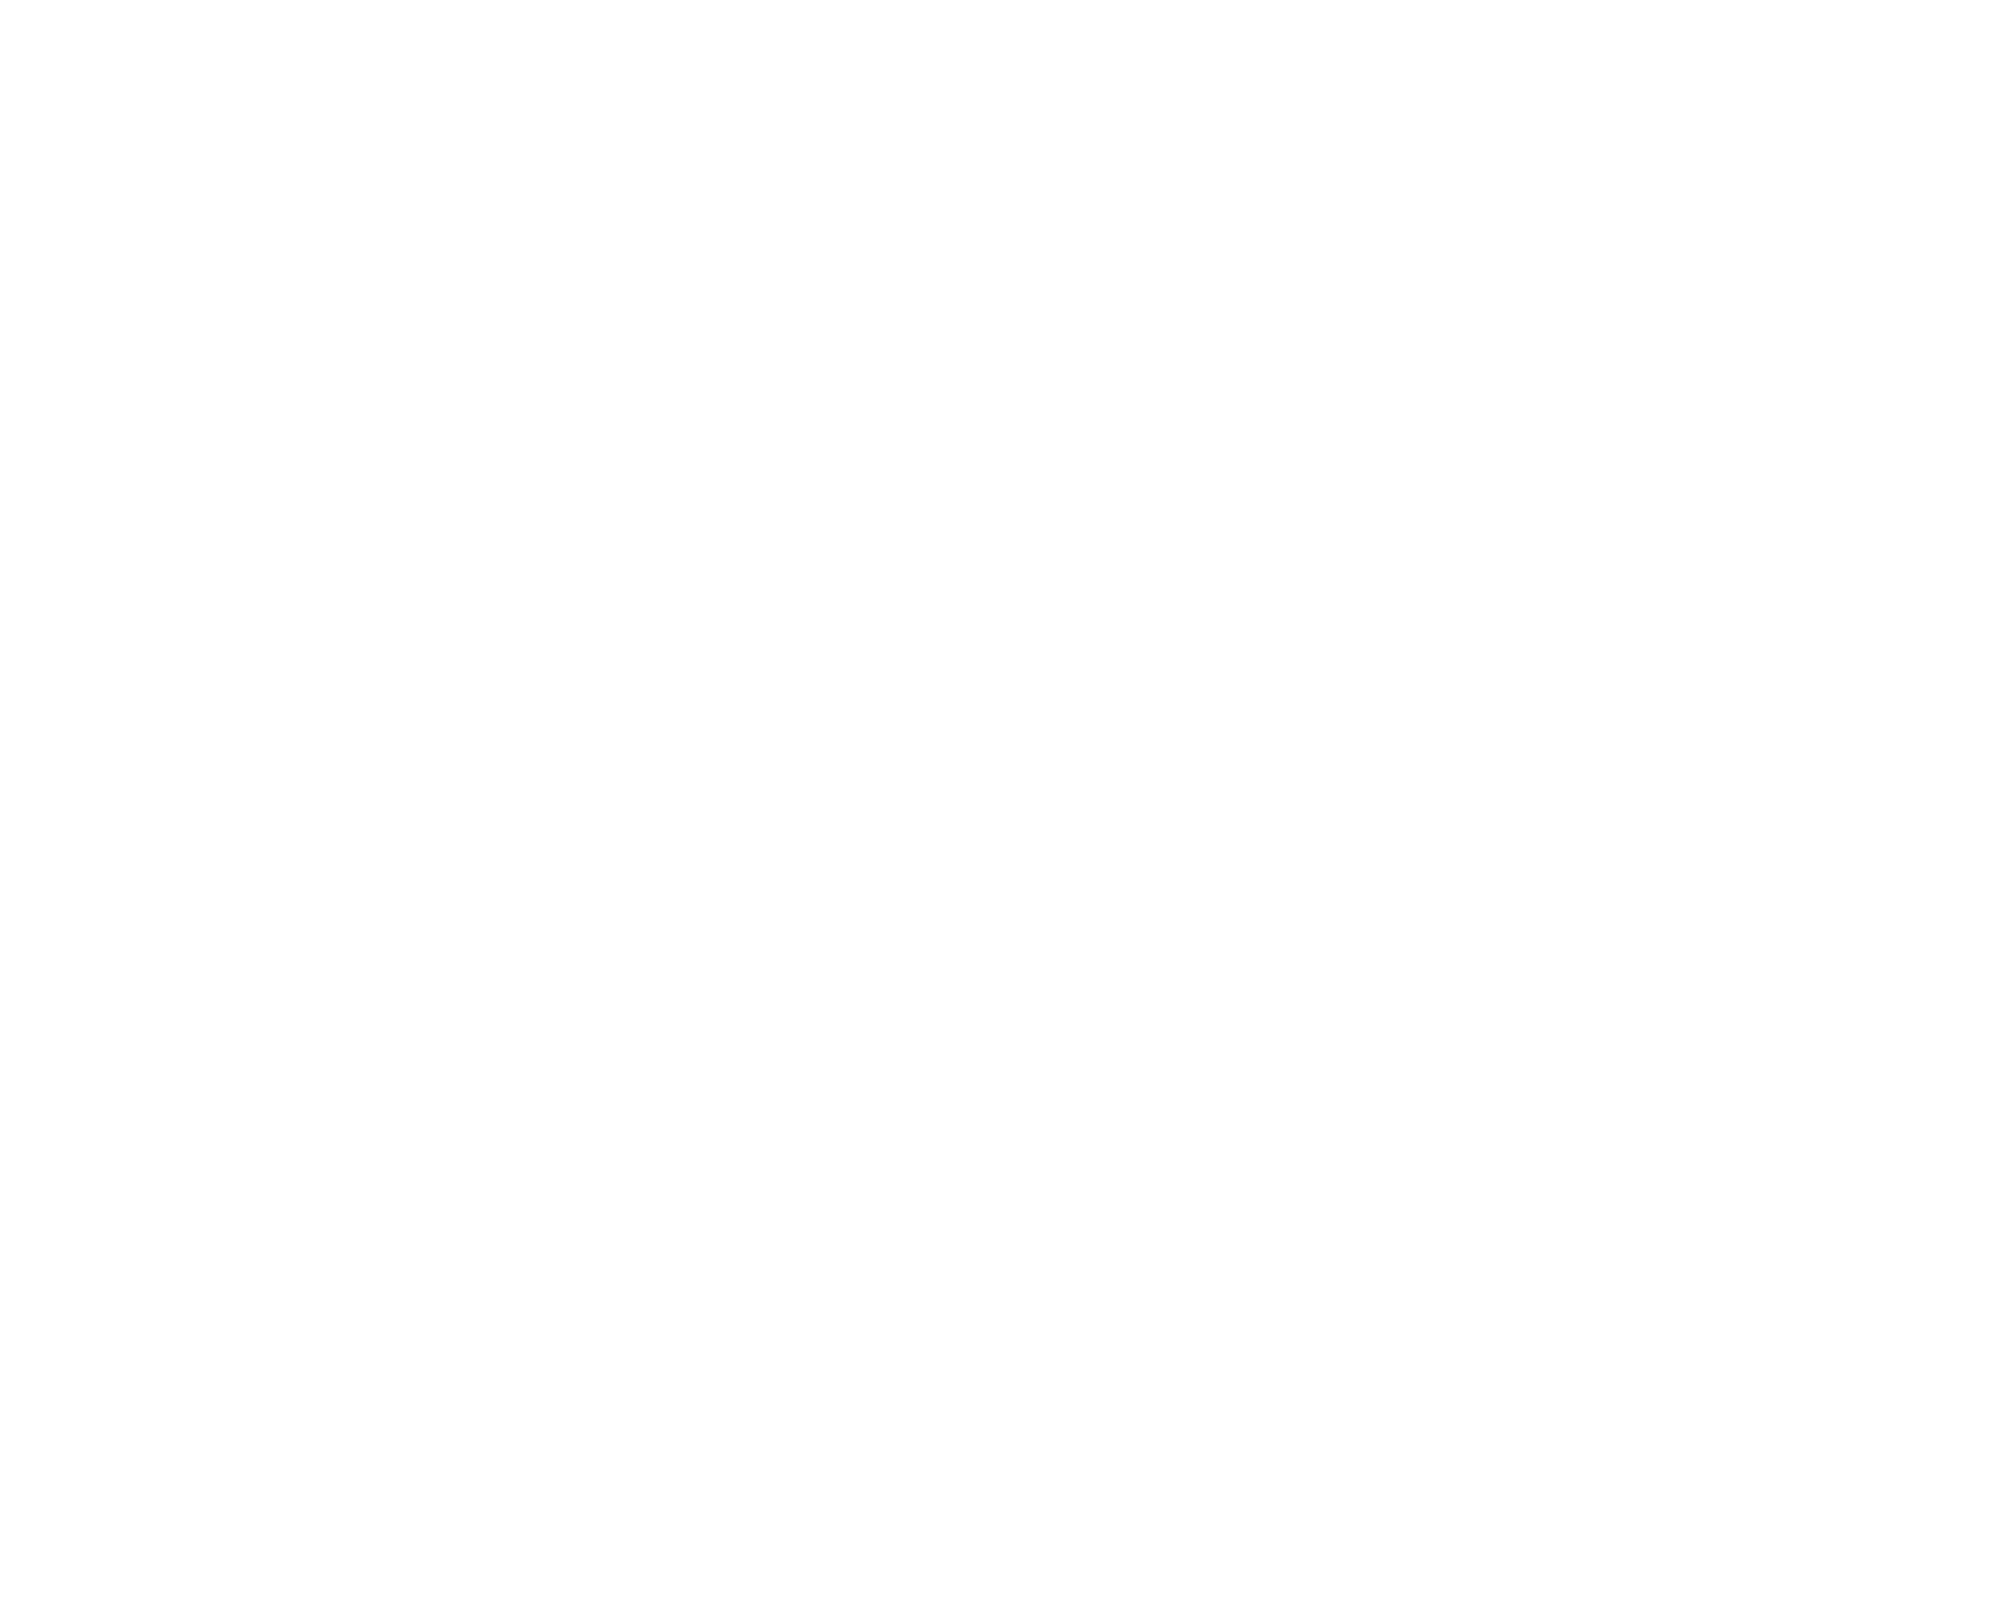 Windermere-Cup-Logo_stacked-laurel-tagline-year_2019_REV